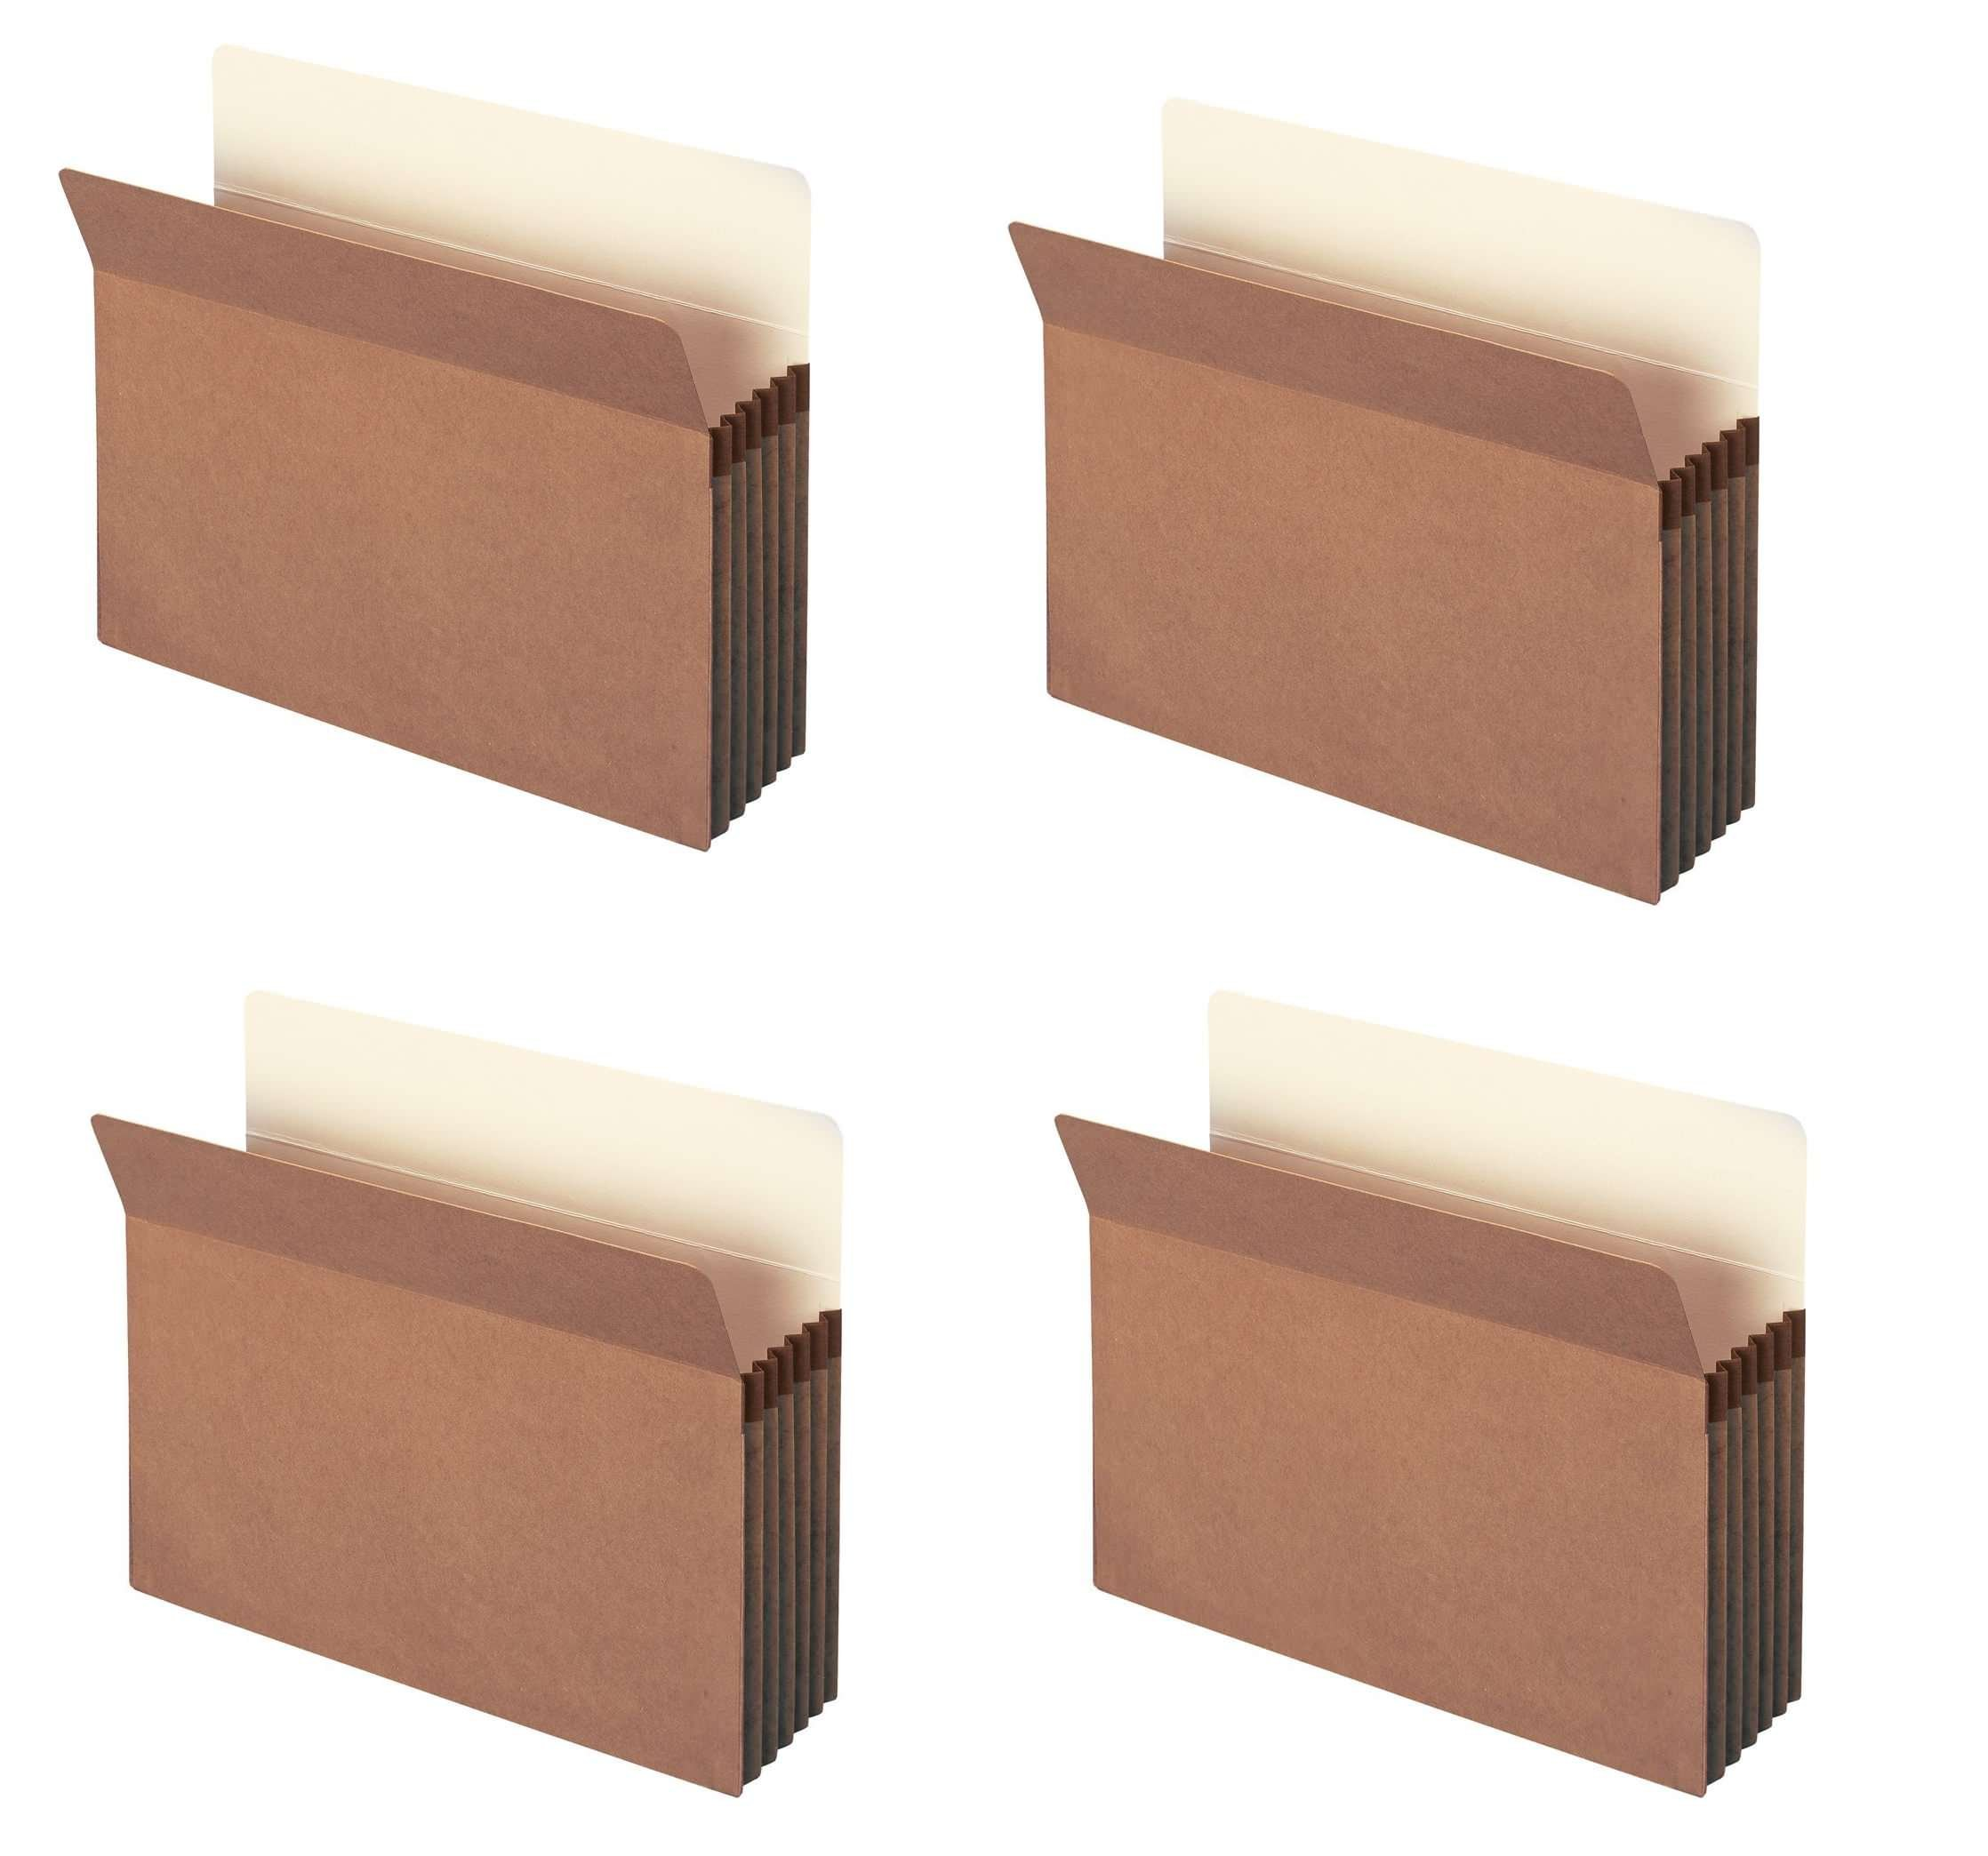 Smead File Pocket, Straight-Cut Tab, 5.25 inches Expansion, Letter Size, Redrope, 10 per Box (73234) HPNmTF, 4 Pack